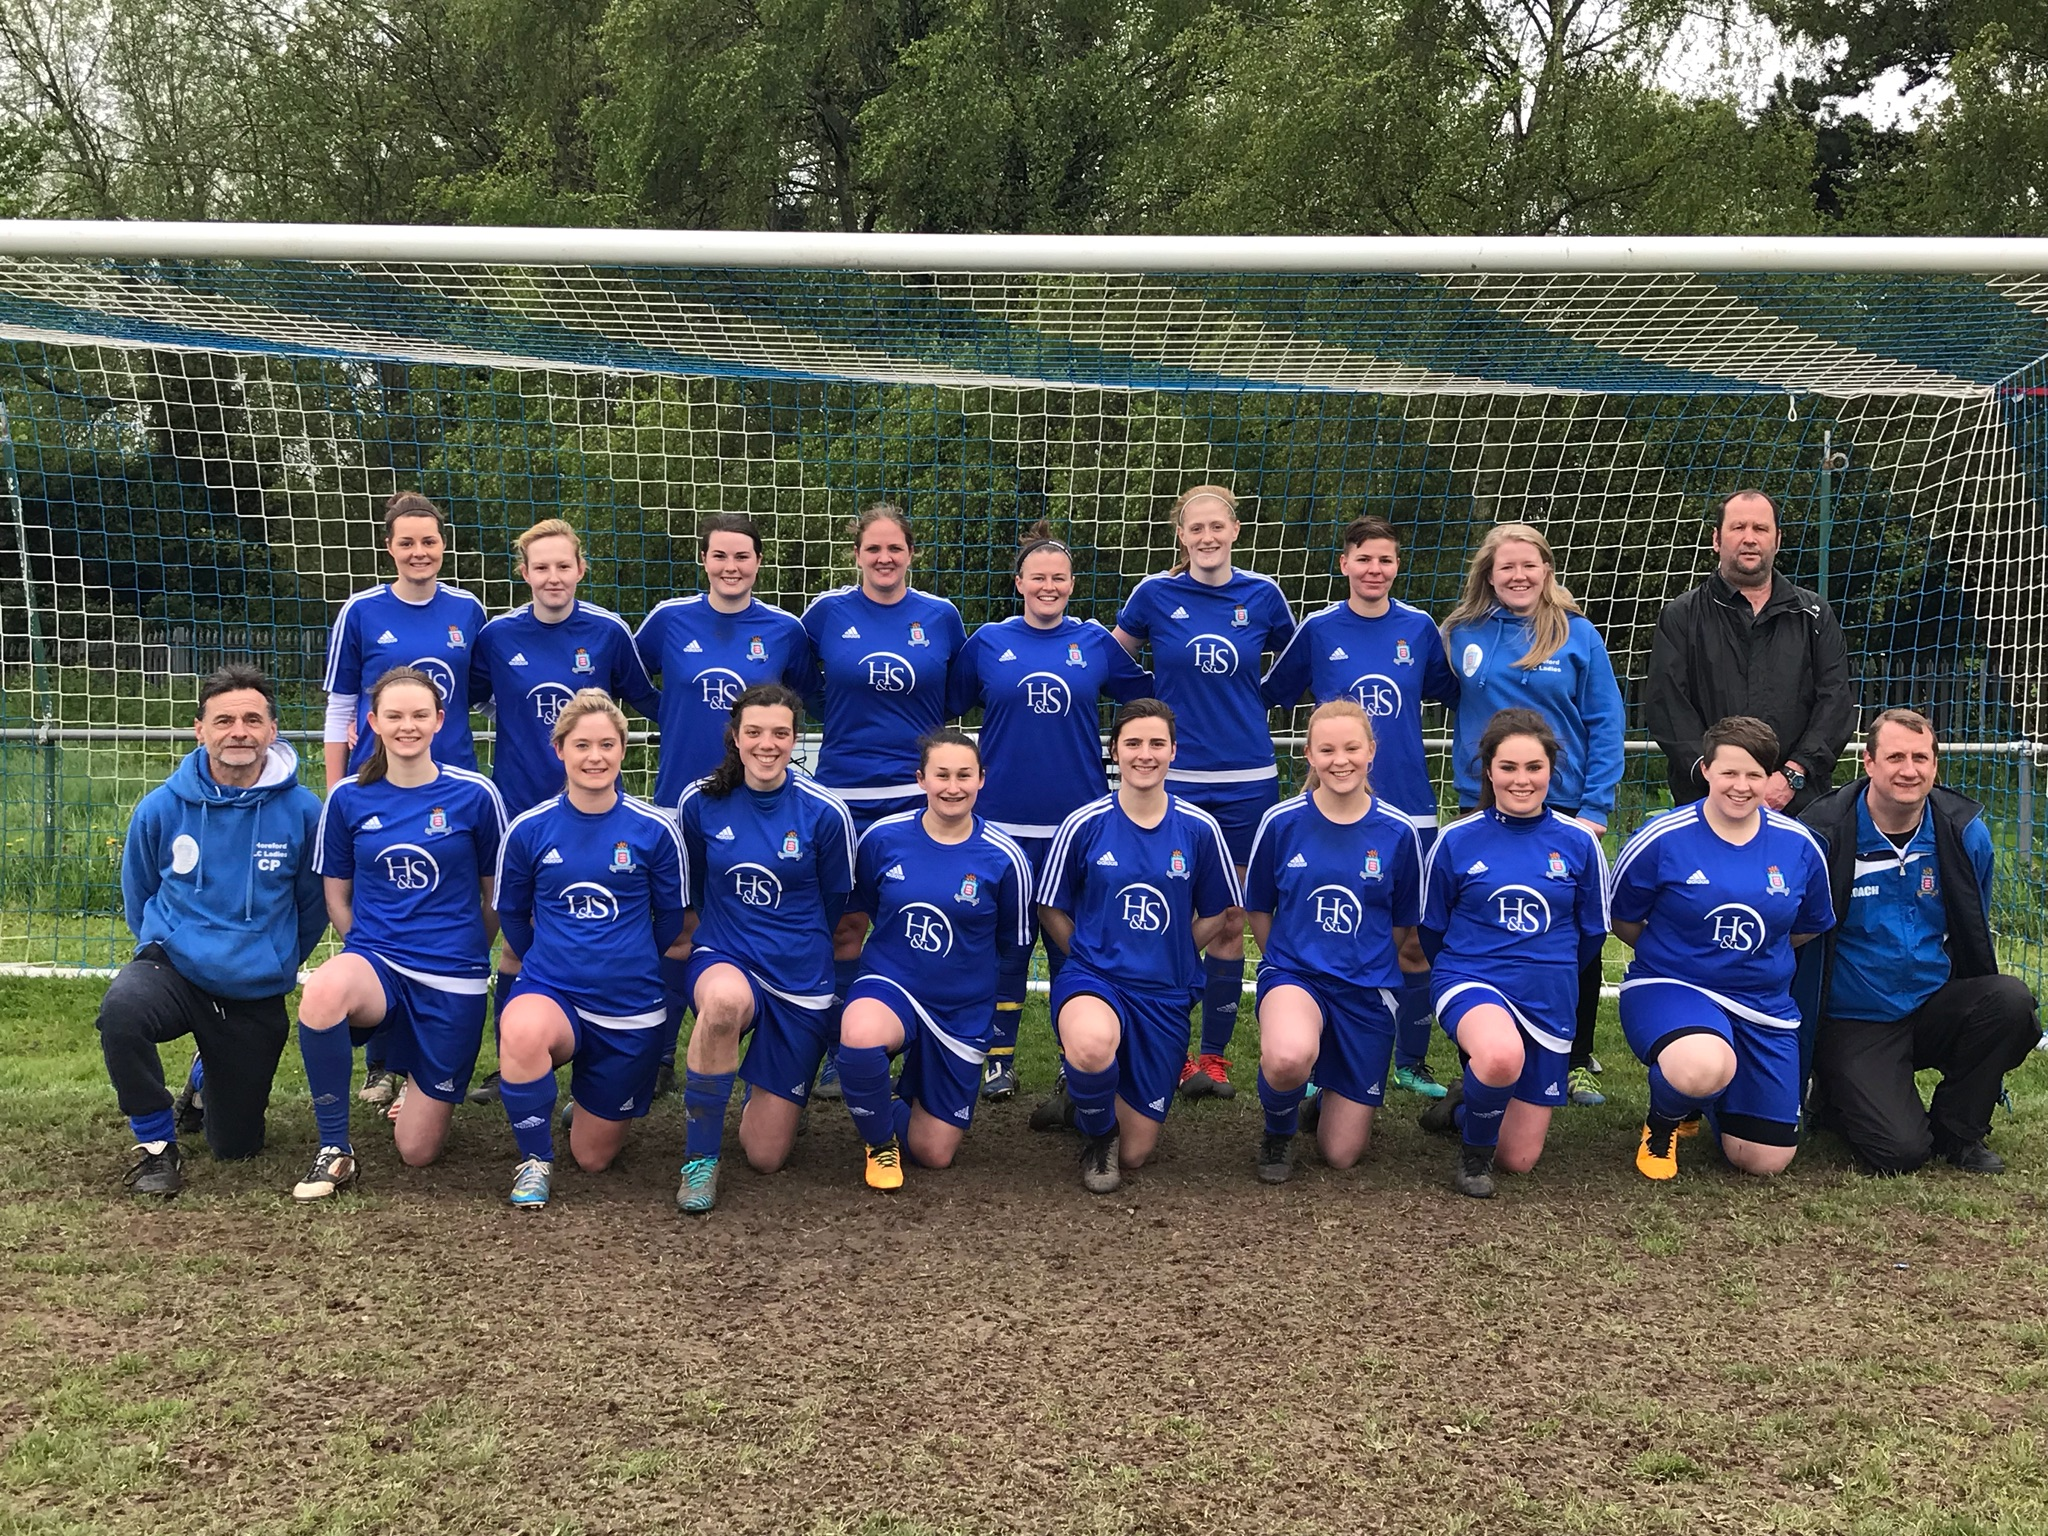 Hereford Lads Club Ladies 2018